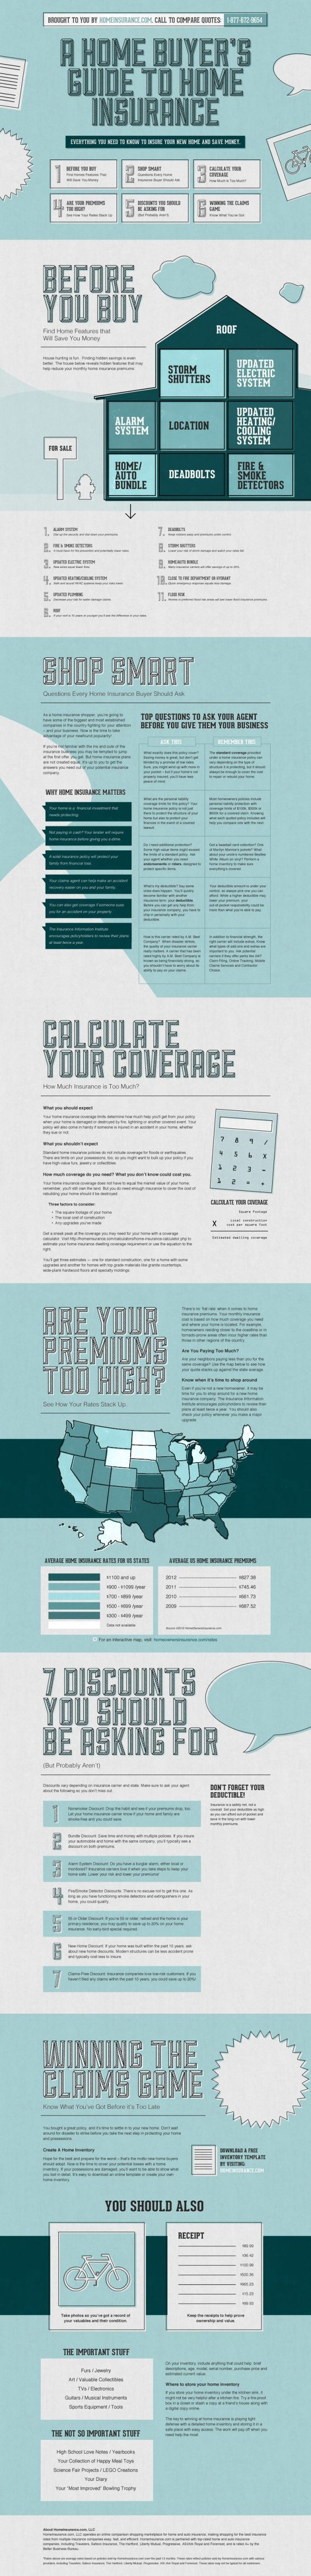 A Home Buyers Guide To Home #Insurance #Infographic